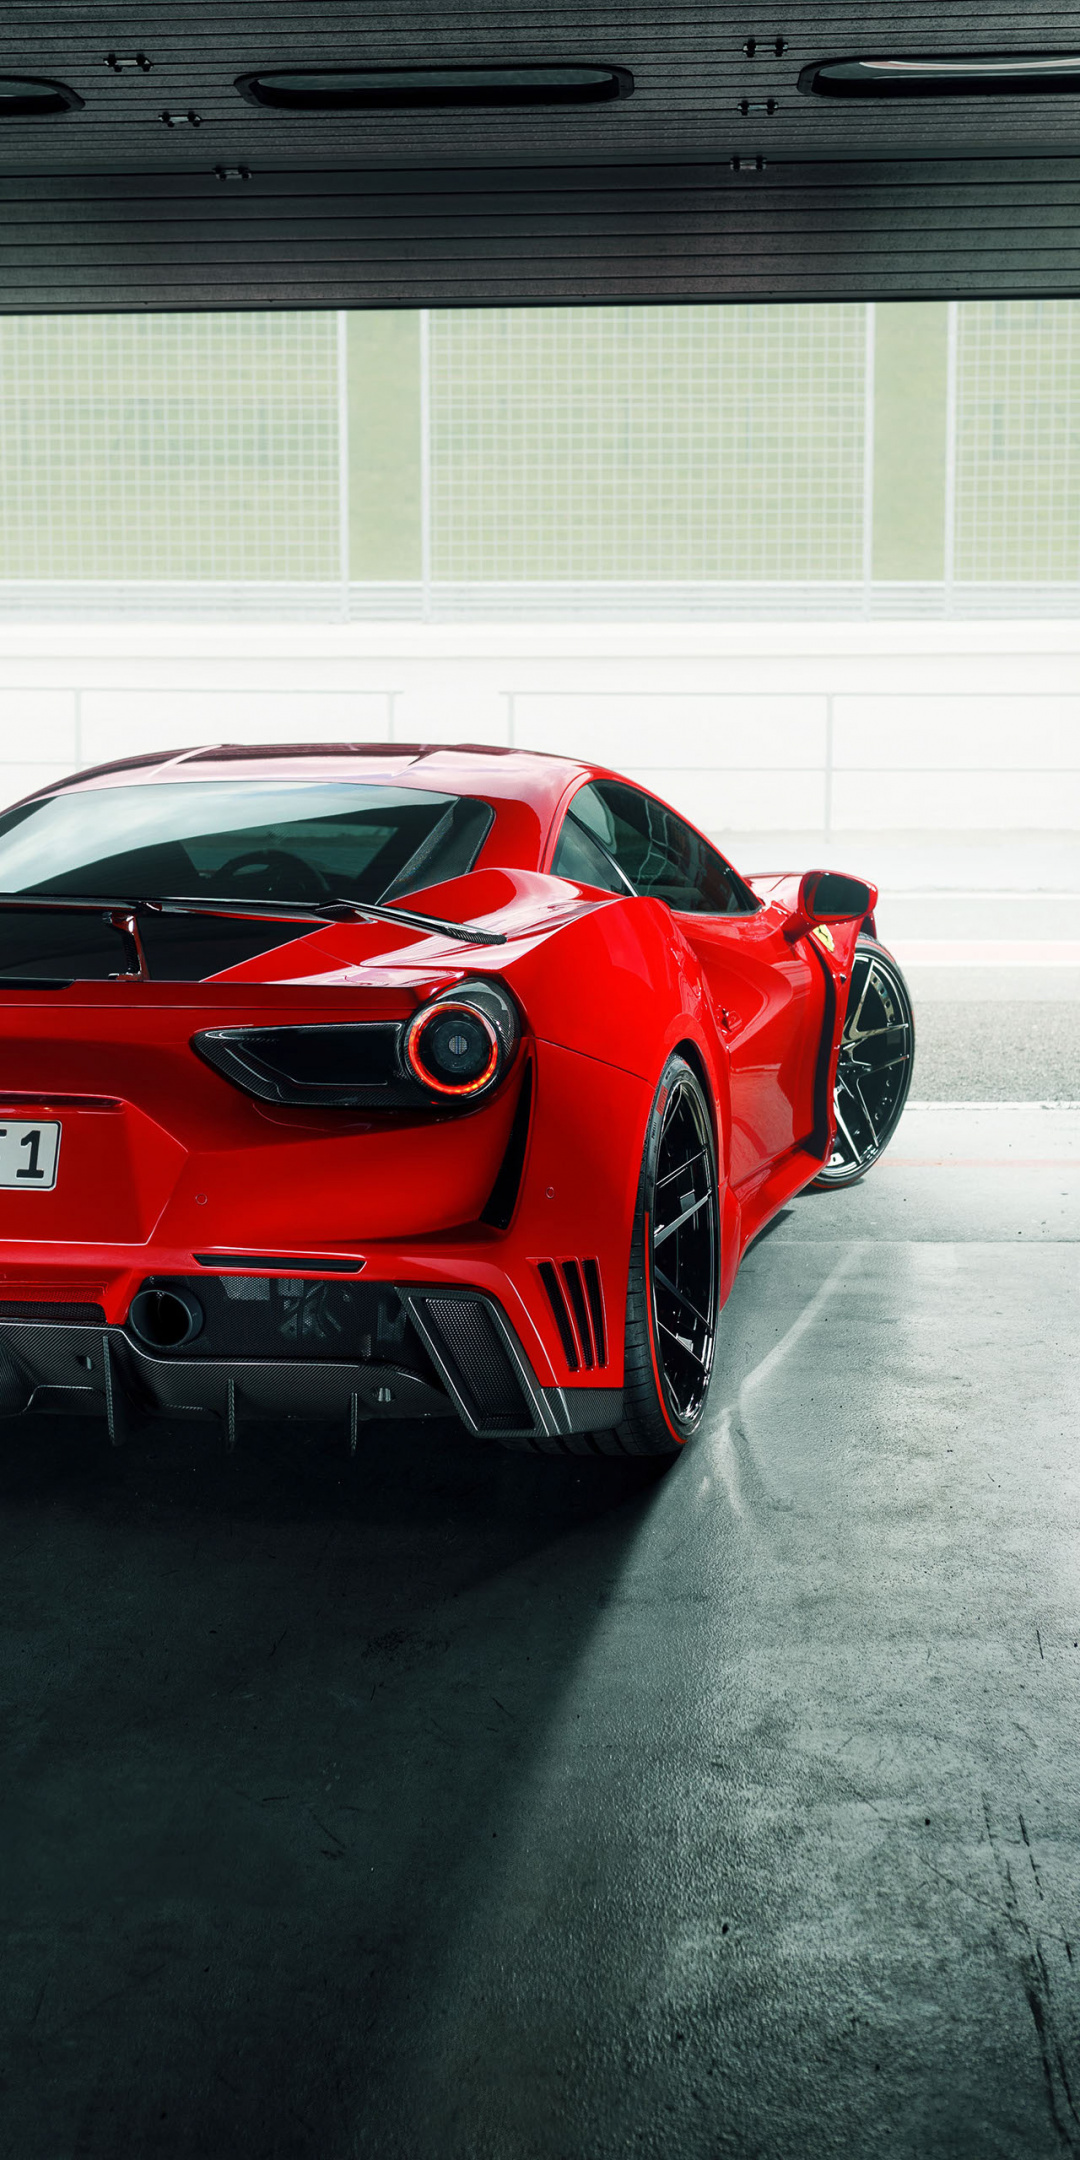 Ferrari 488 Gtb Sports Car Rear Wallpaper Ferrari 488 Gtb N 2100212 Hd Wallpaper Backgrounds Download